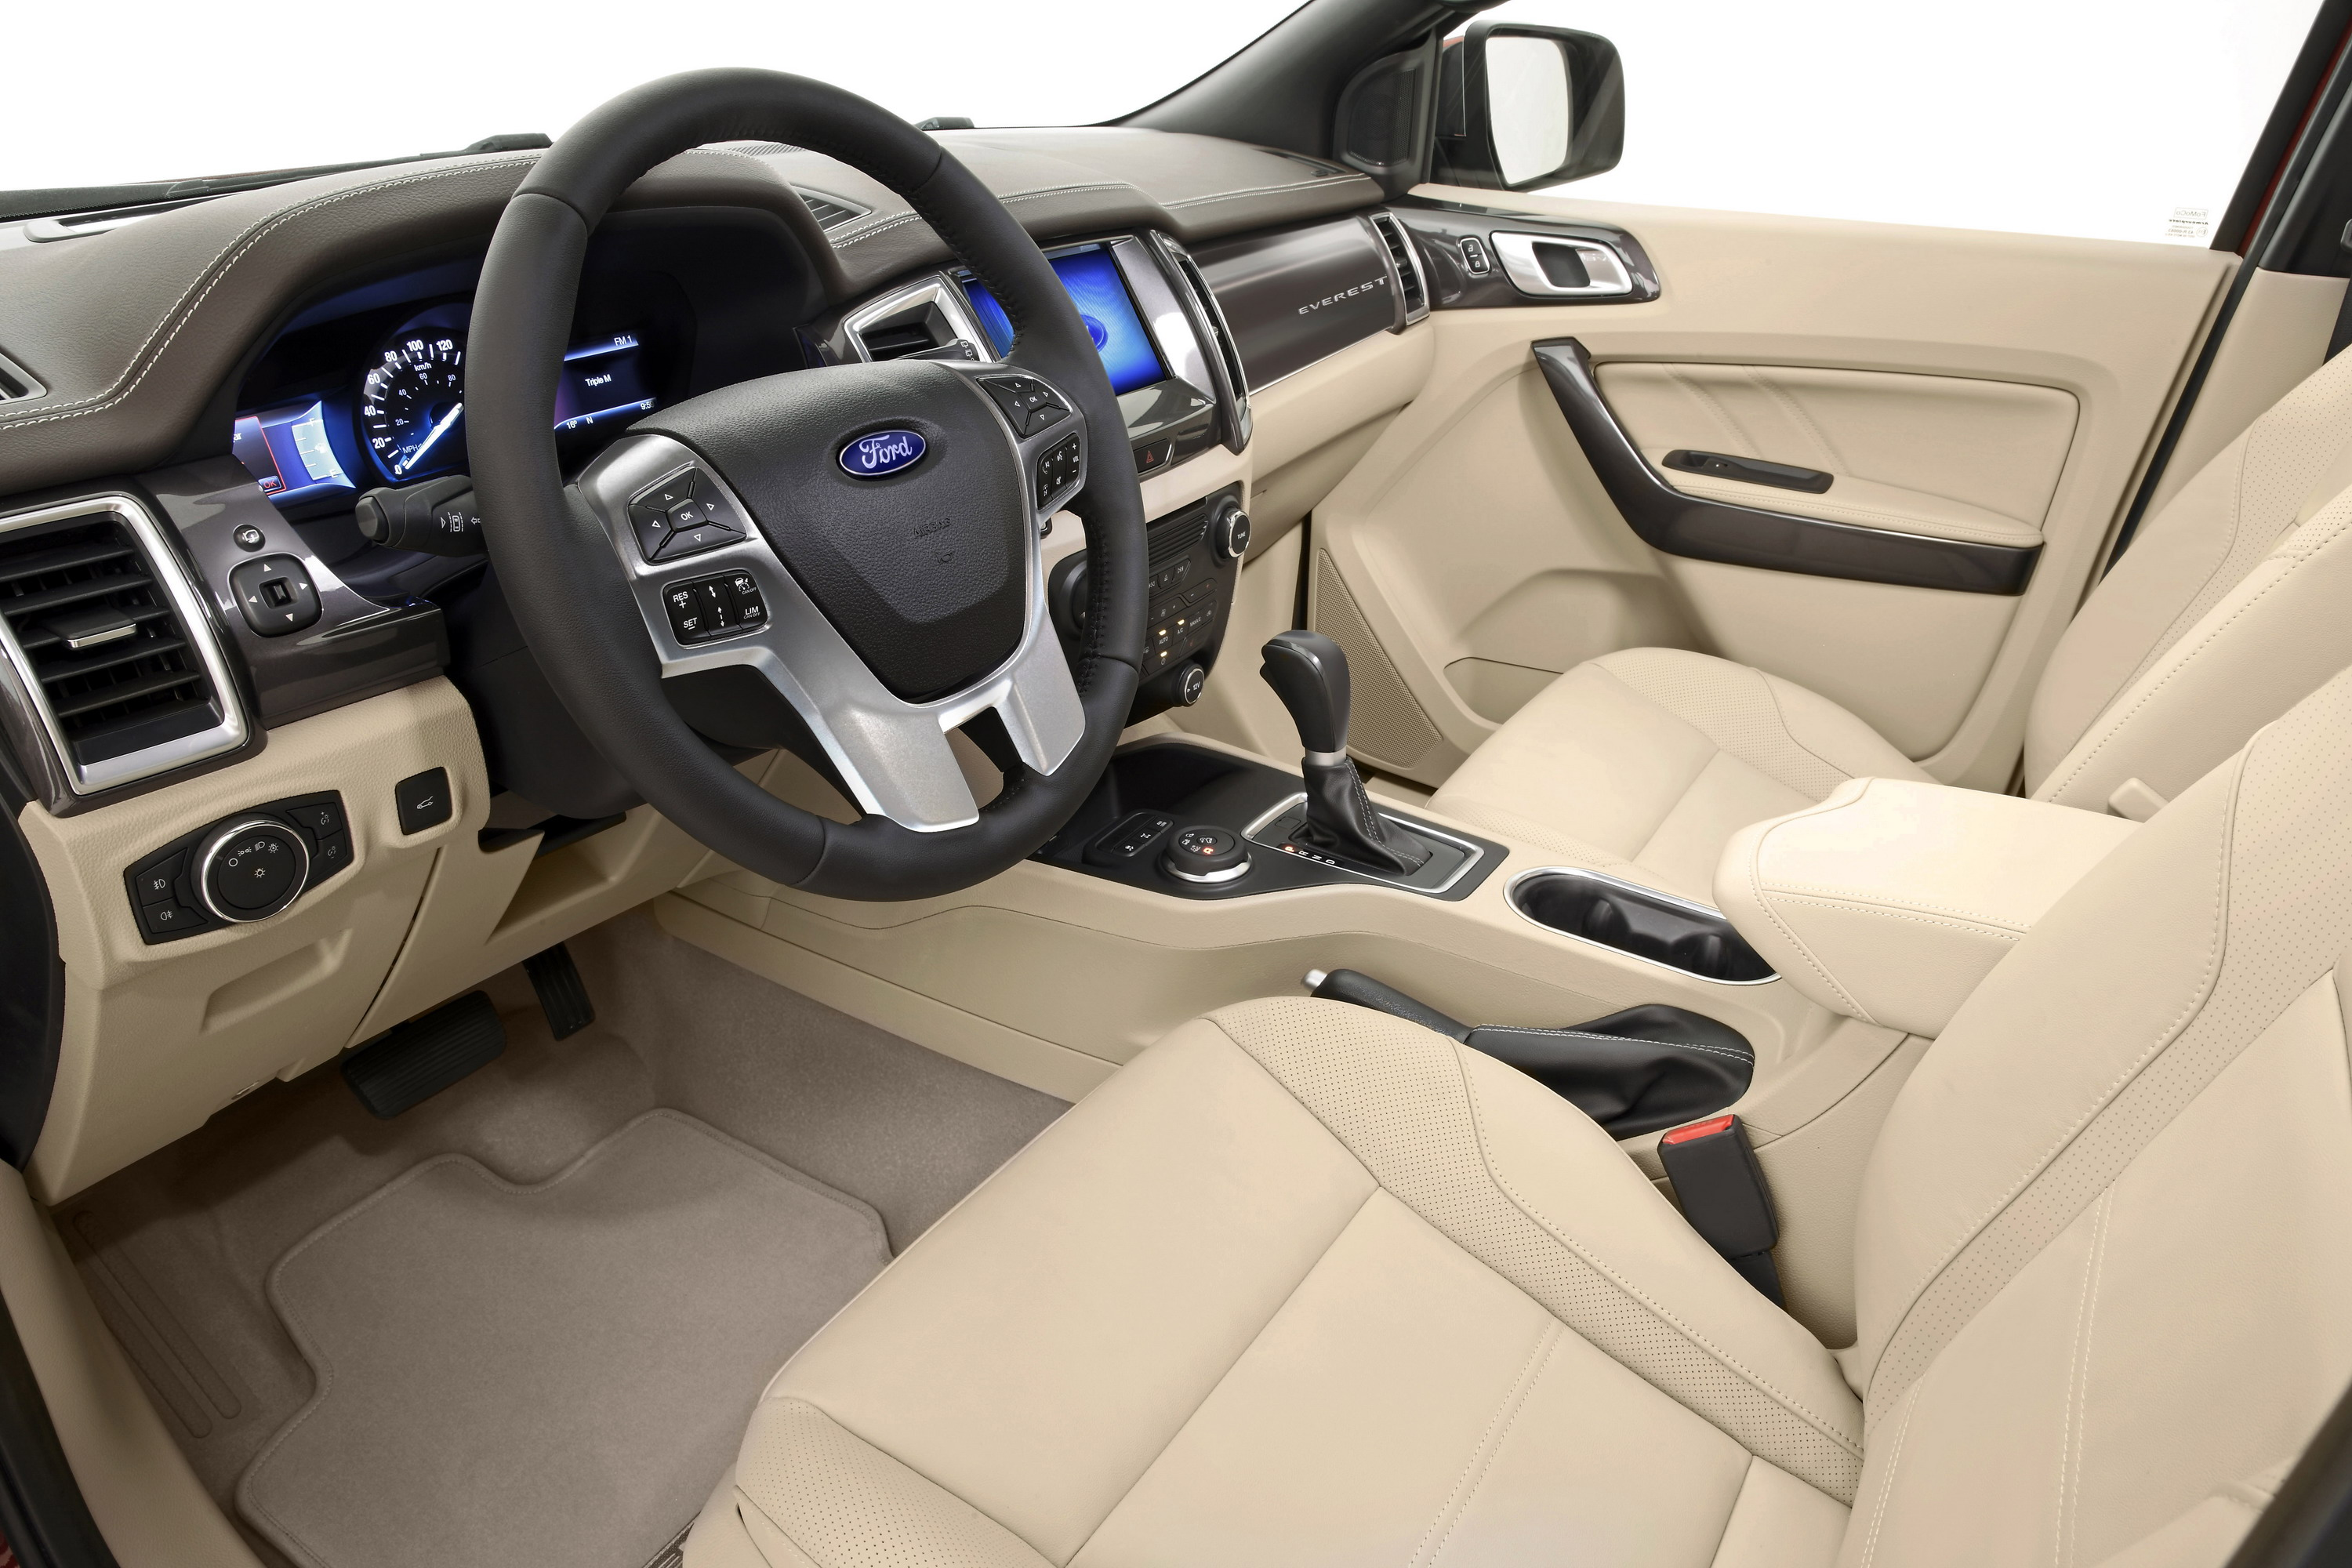 2015 ford everest top speed rh topspeed com ford everest manual 2018 ford everest manual philippines